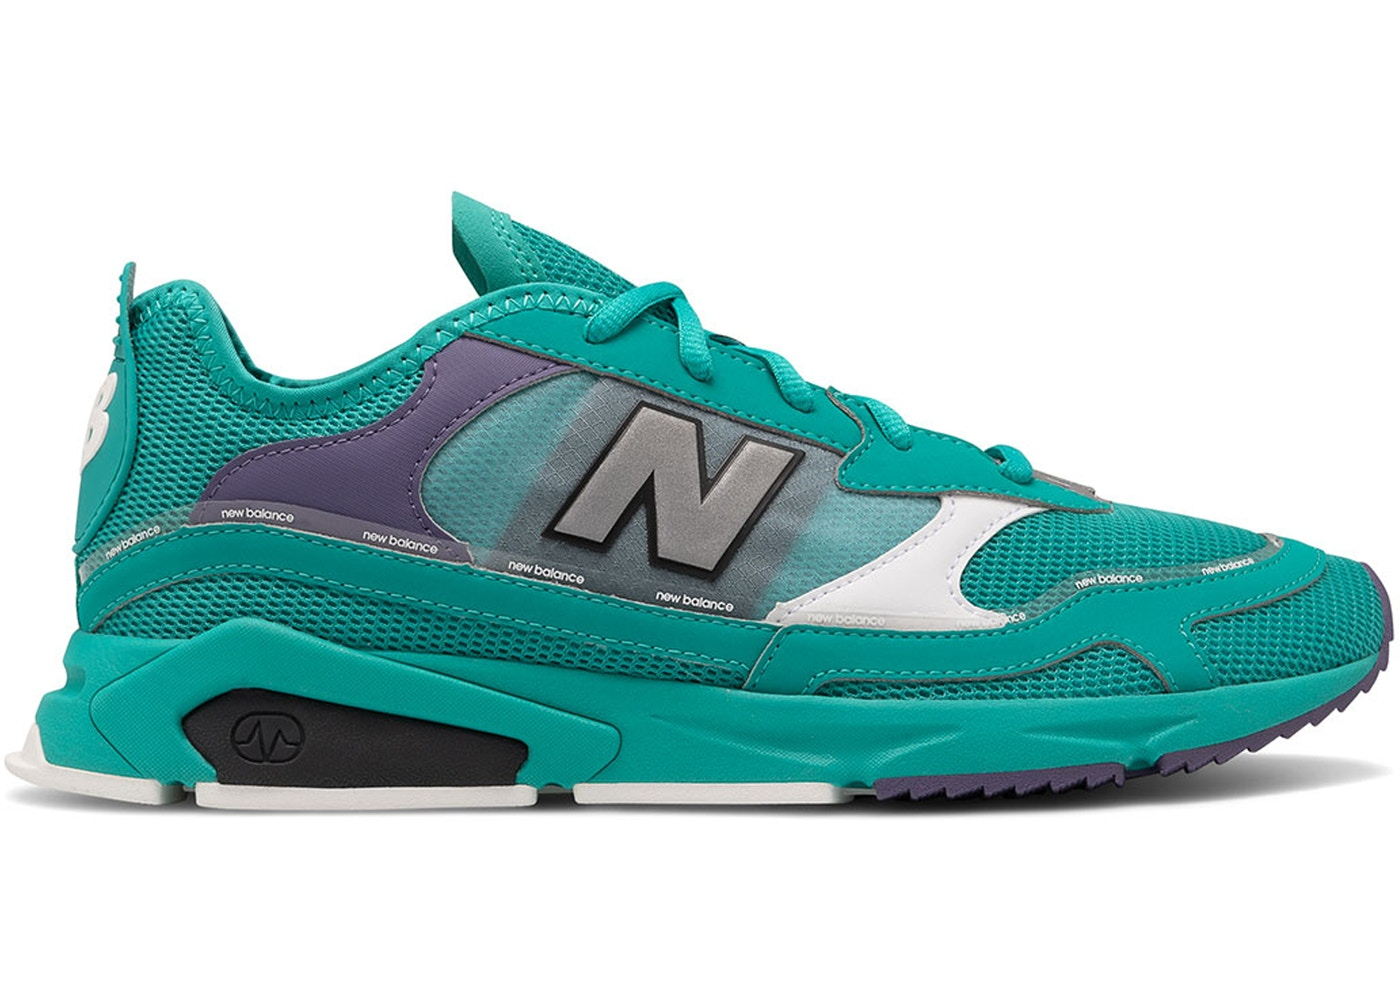 New Balance X-Racer Teal - Sneakers